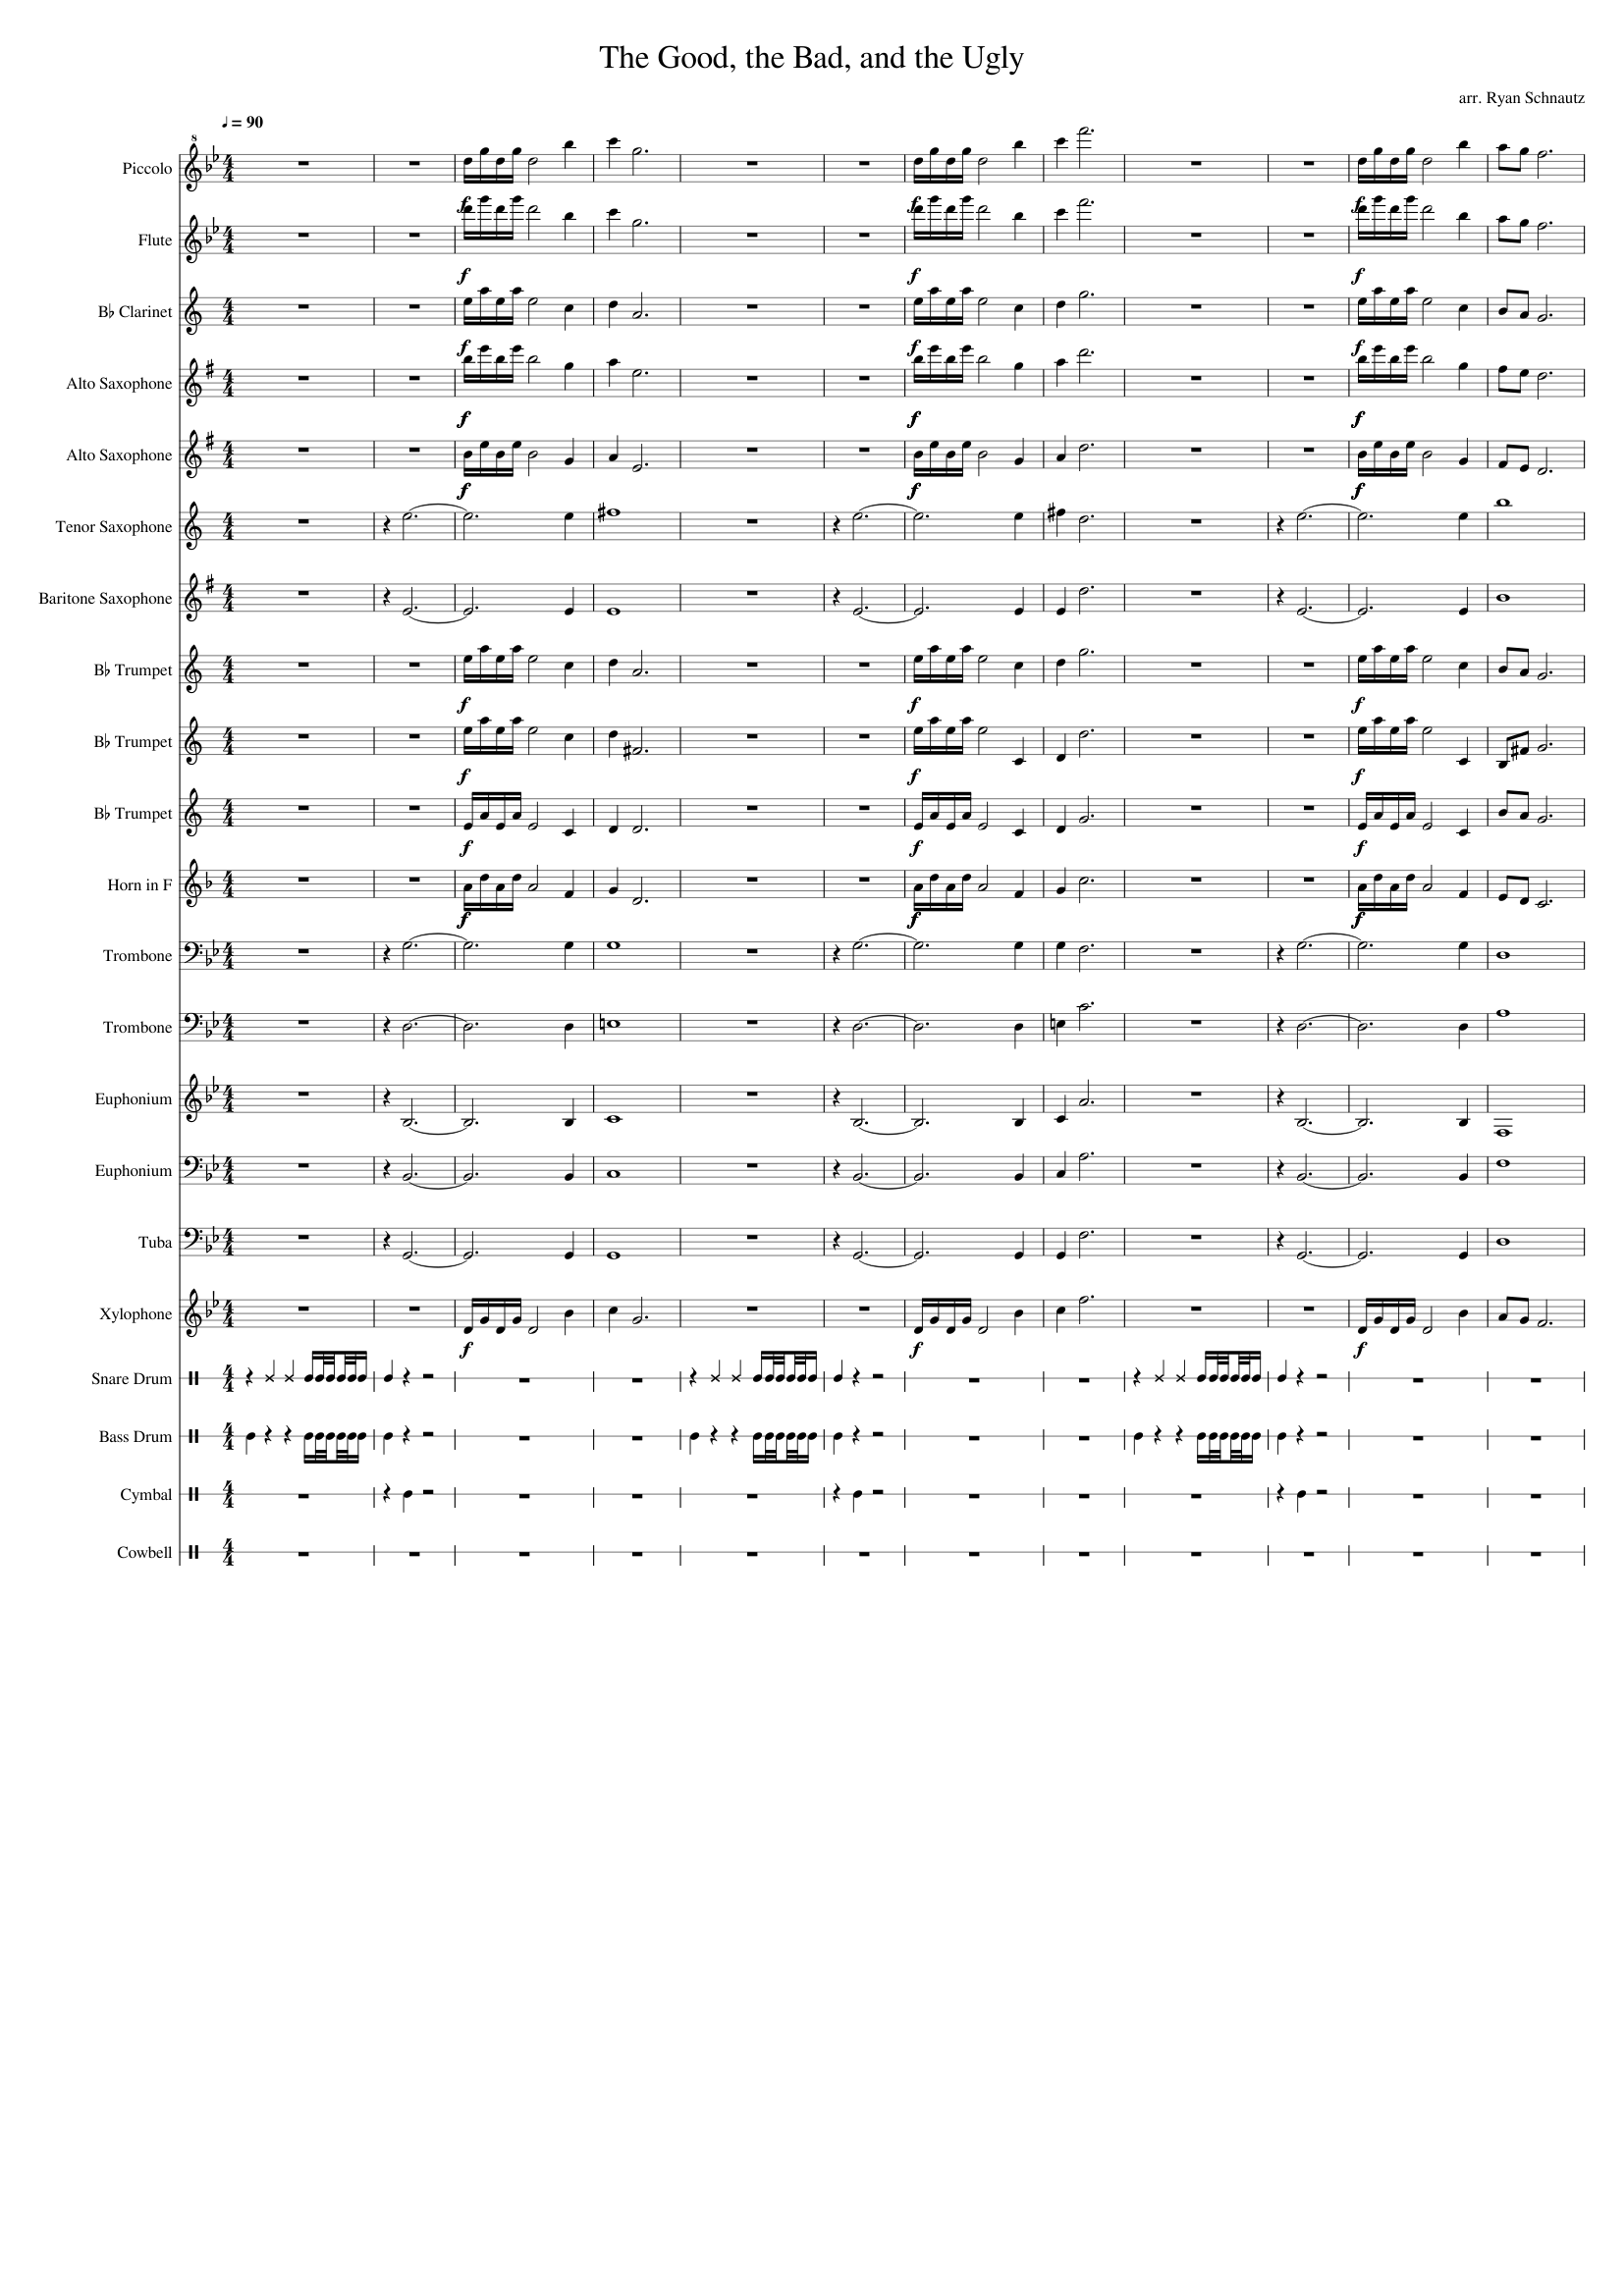 The good, the bad, the ugly the triello sheet music download.